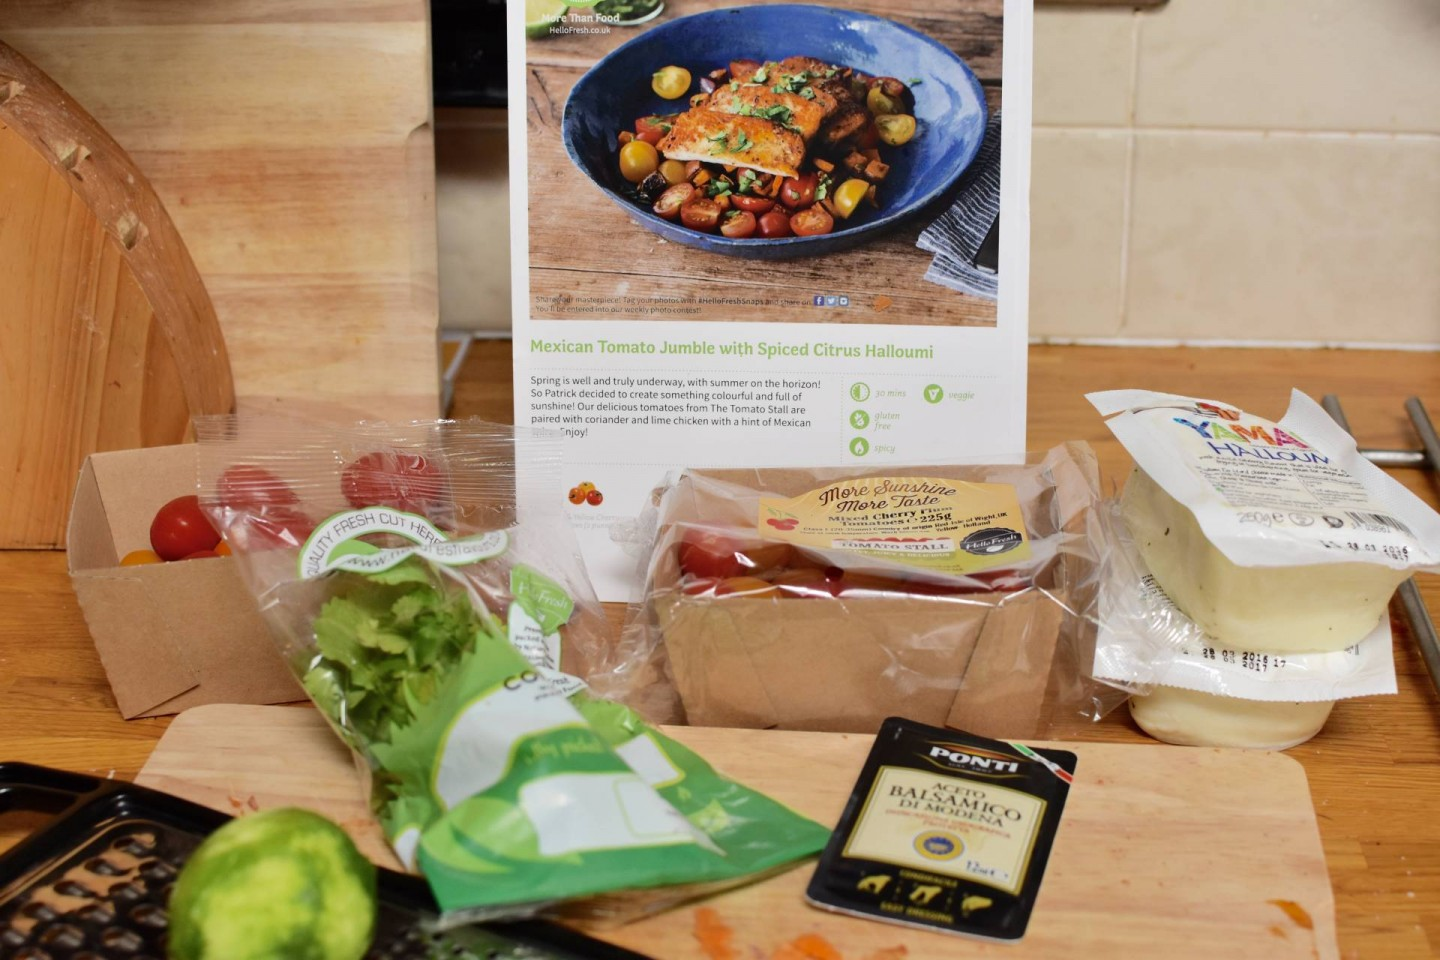 making family life as a busy working mum so much easier with Hello fresh boxes!